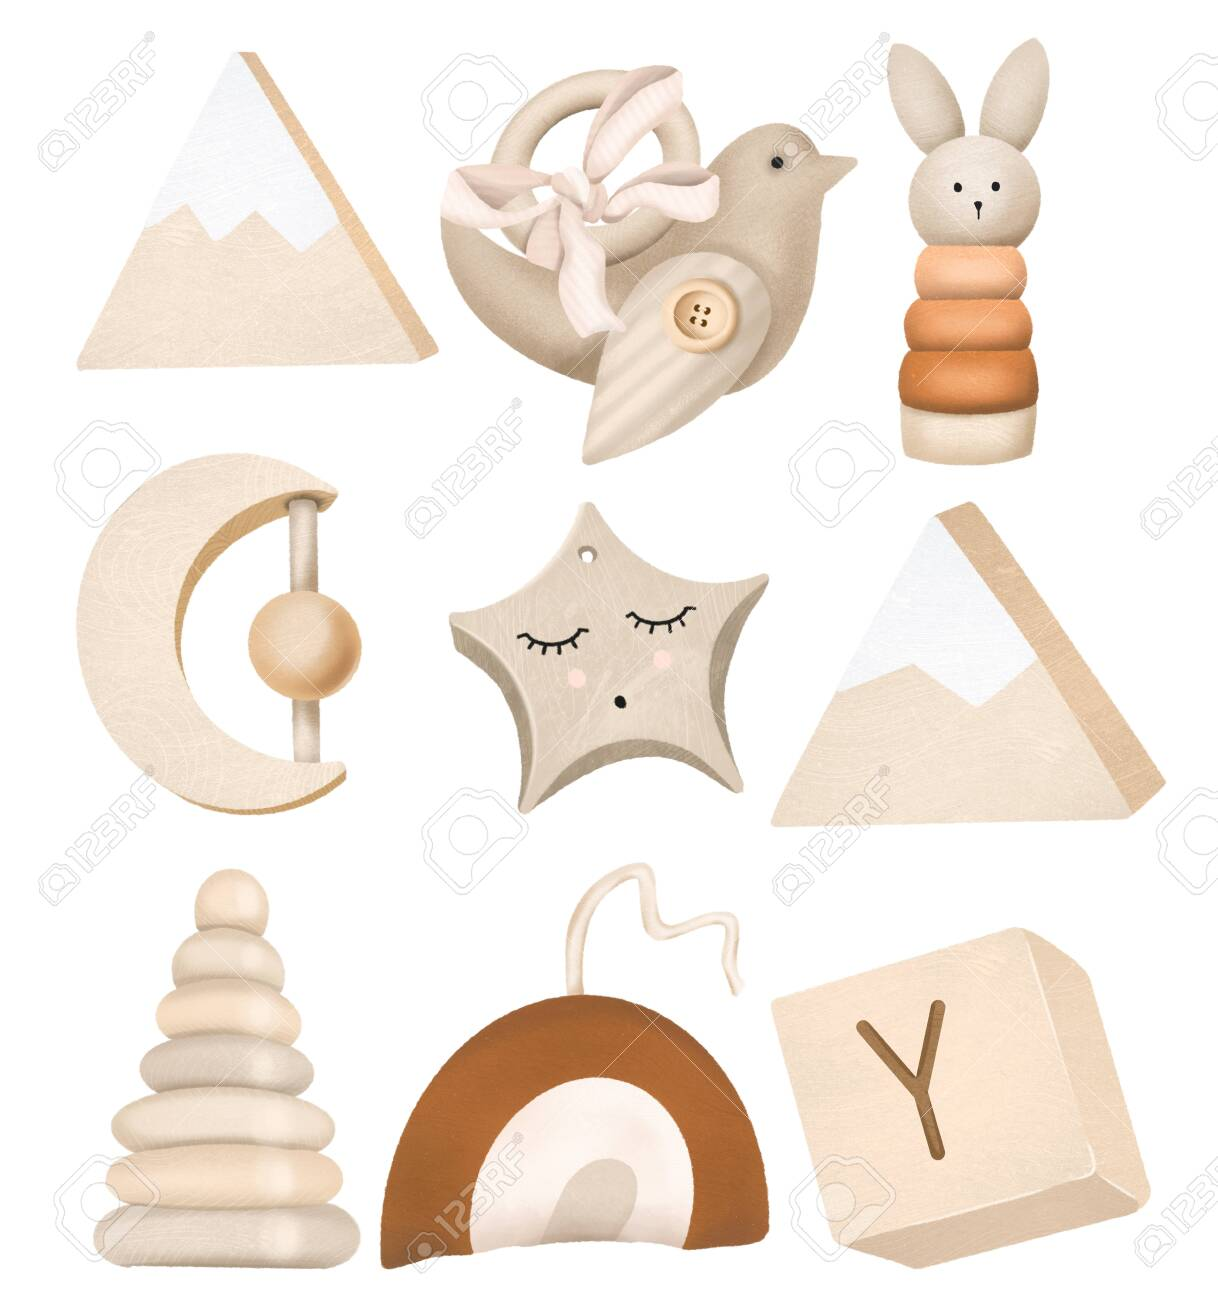 Set of wooden toys for kids, isolated elements on a white - 149741914